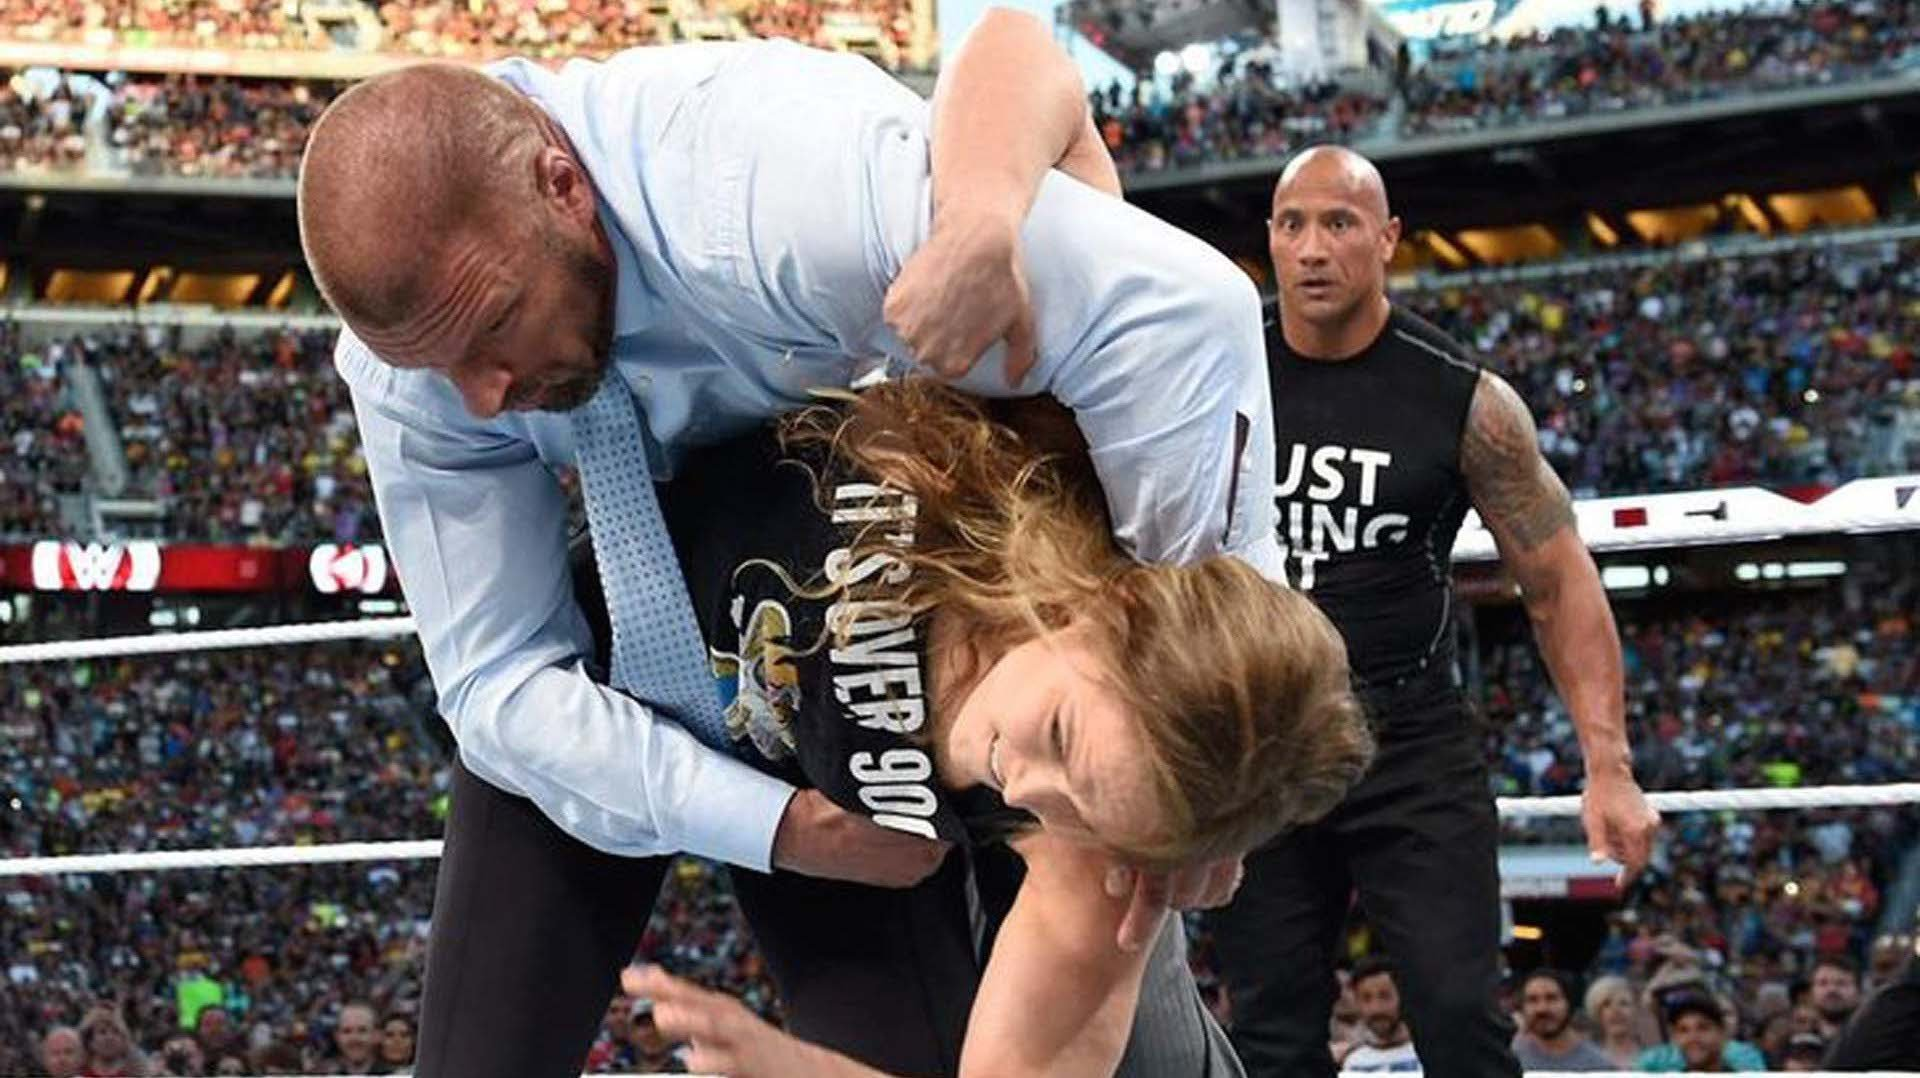 Ronda with her WWE appearance